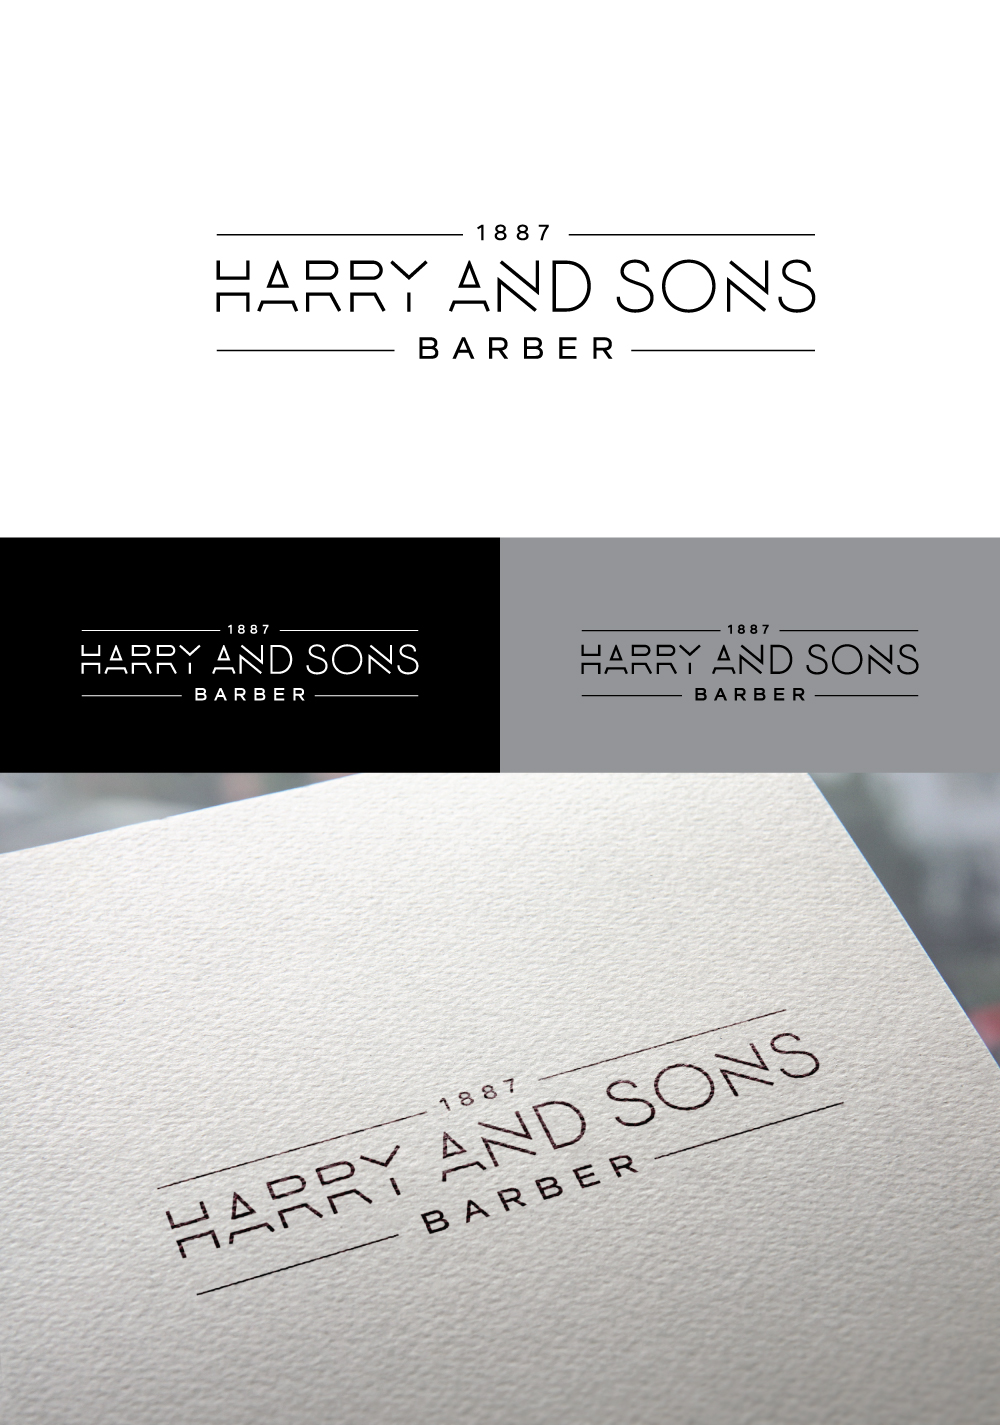 Logo Design by Tauhid Shaikh - Entry No. 181 in the Logo Design Contest Captivating Logo Design for Harry and Sons Barber.